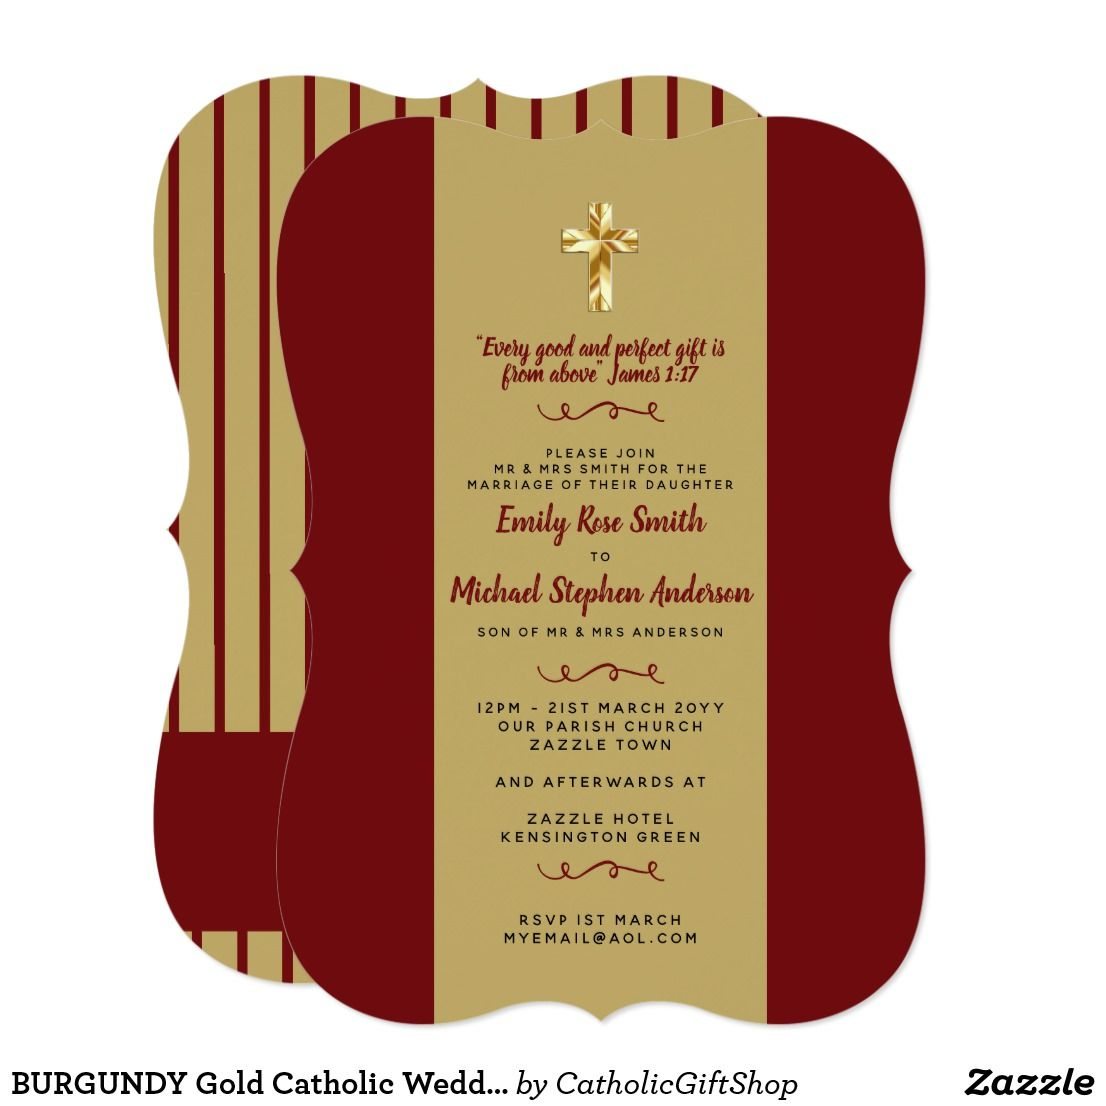 BURGUNDY Gold Catholic Wedding Invites Bible Verse | Catholic Store ...